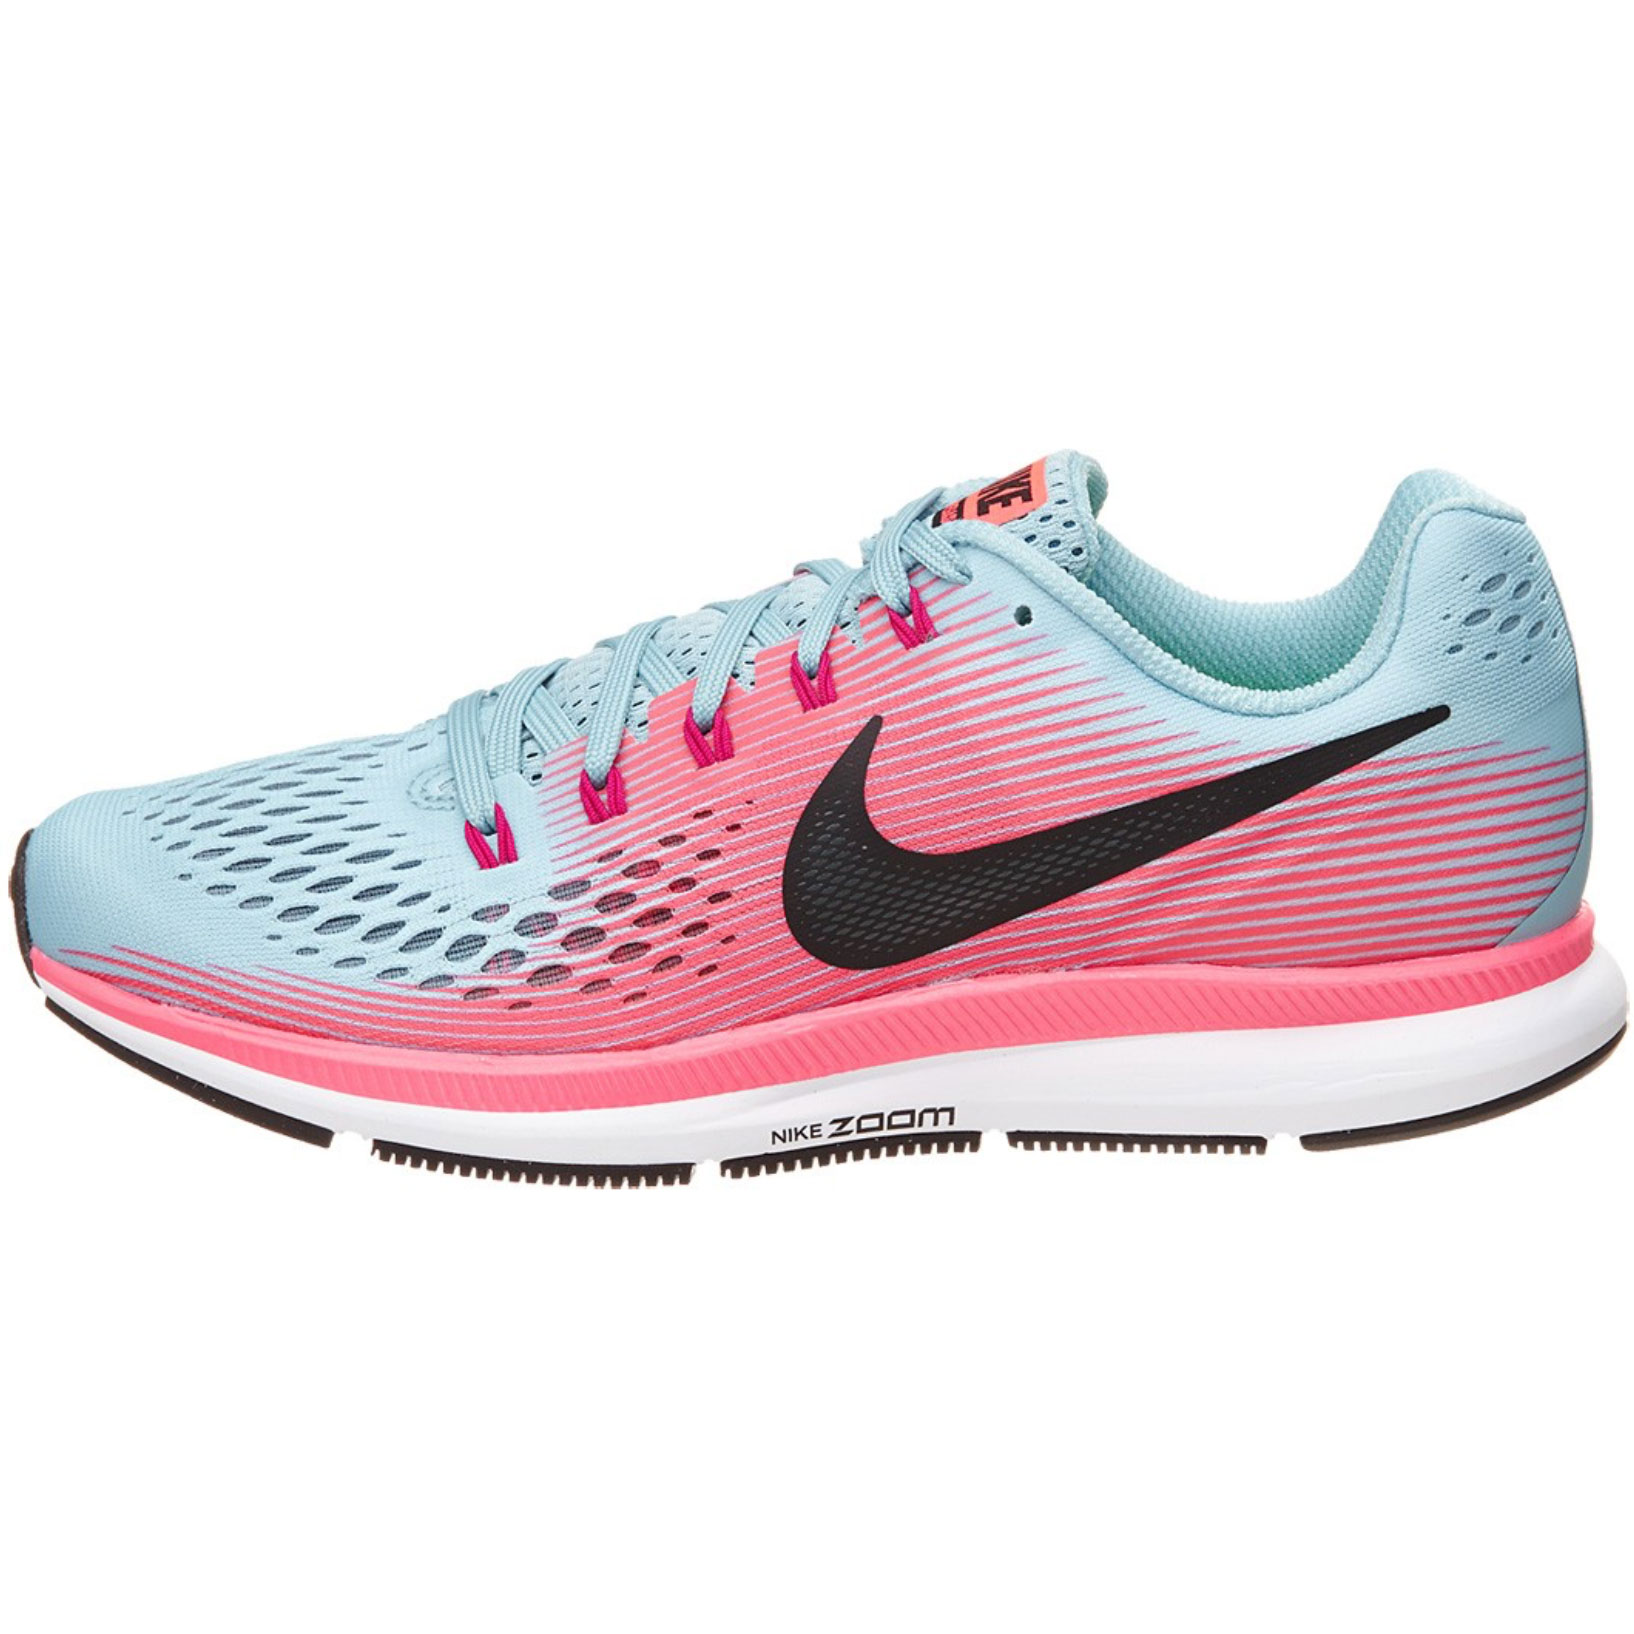 Nike Air Zoom Pegasus 34 review and buying advice | ShoeGuide